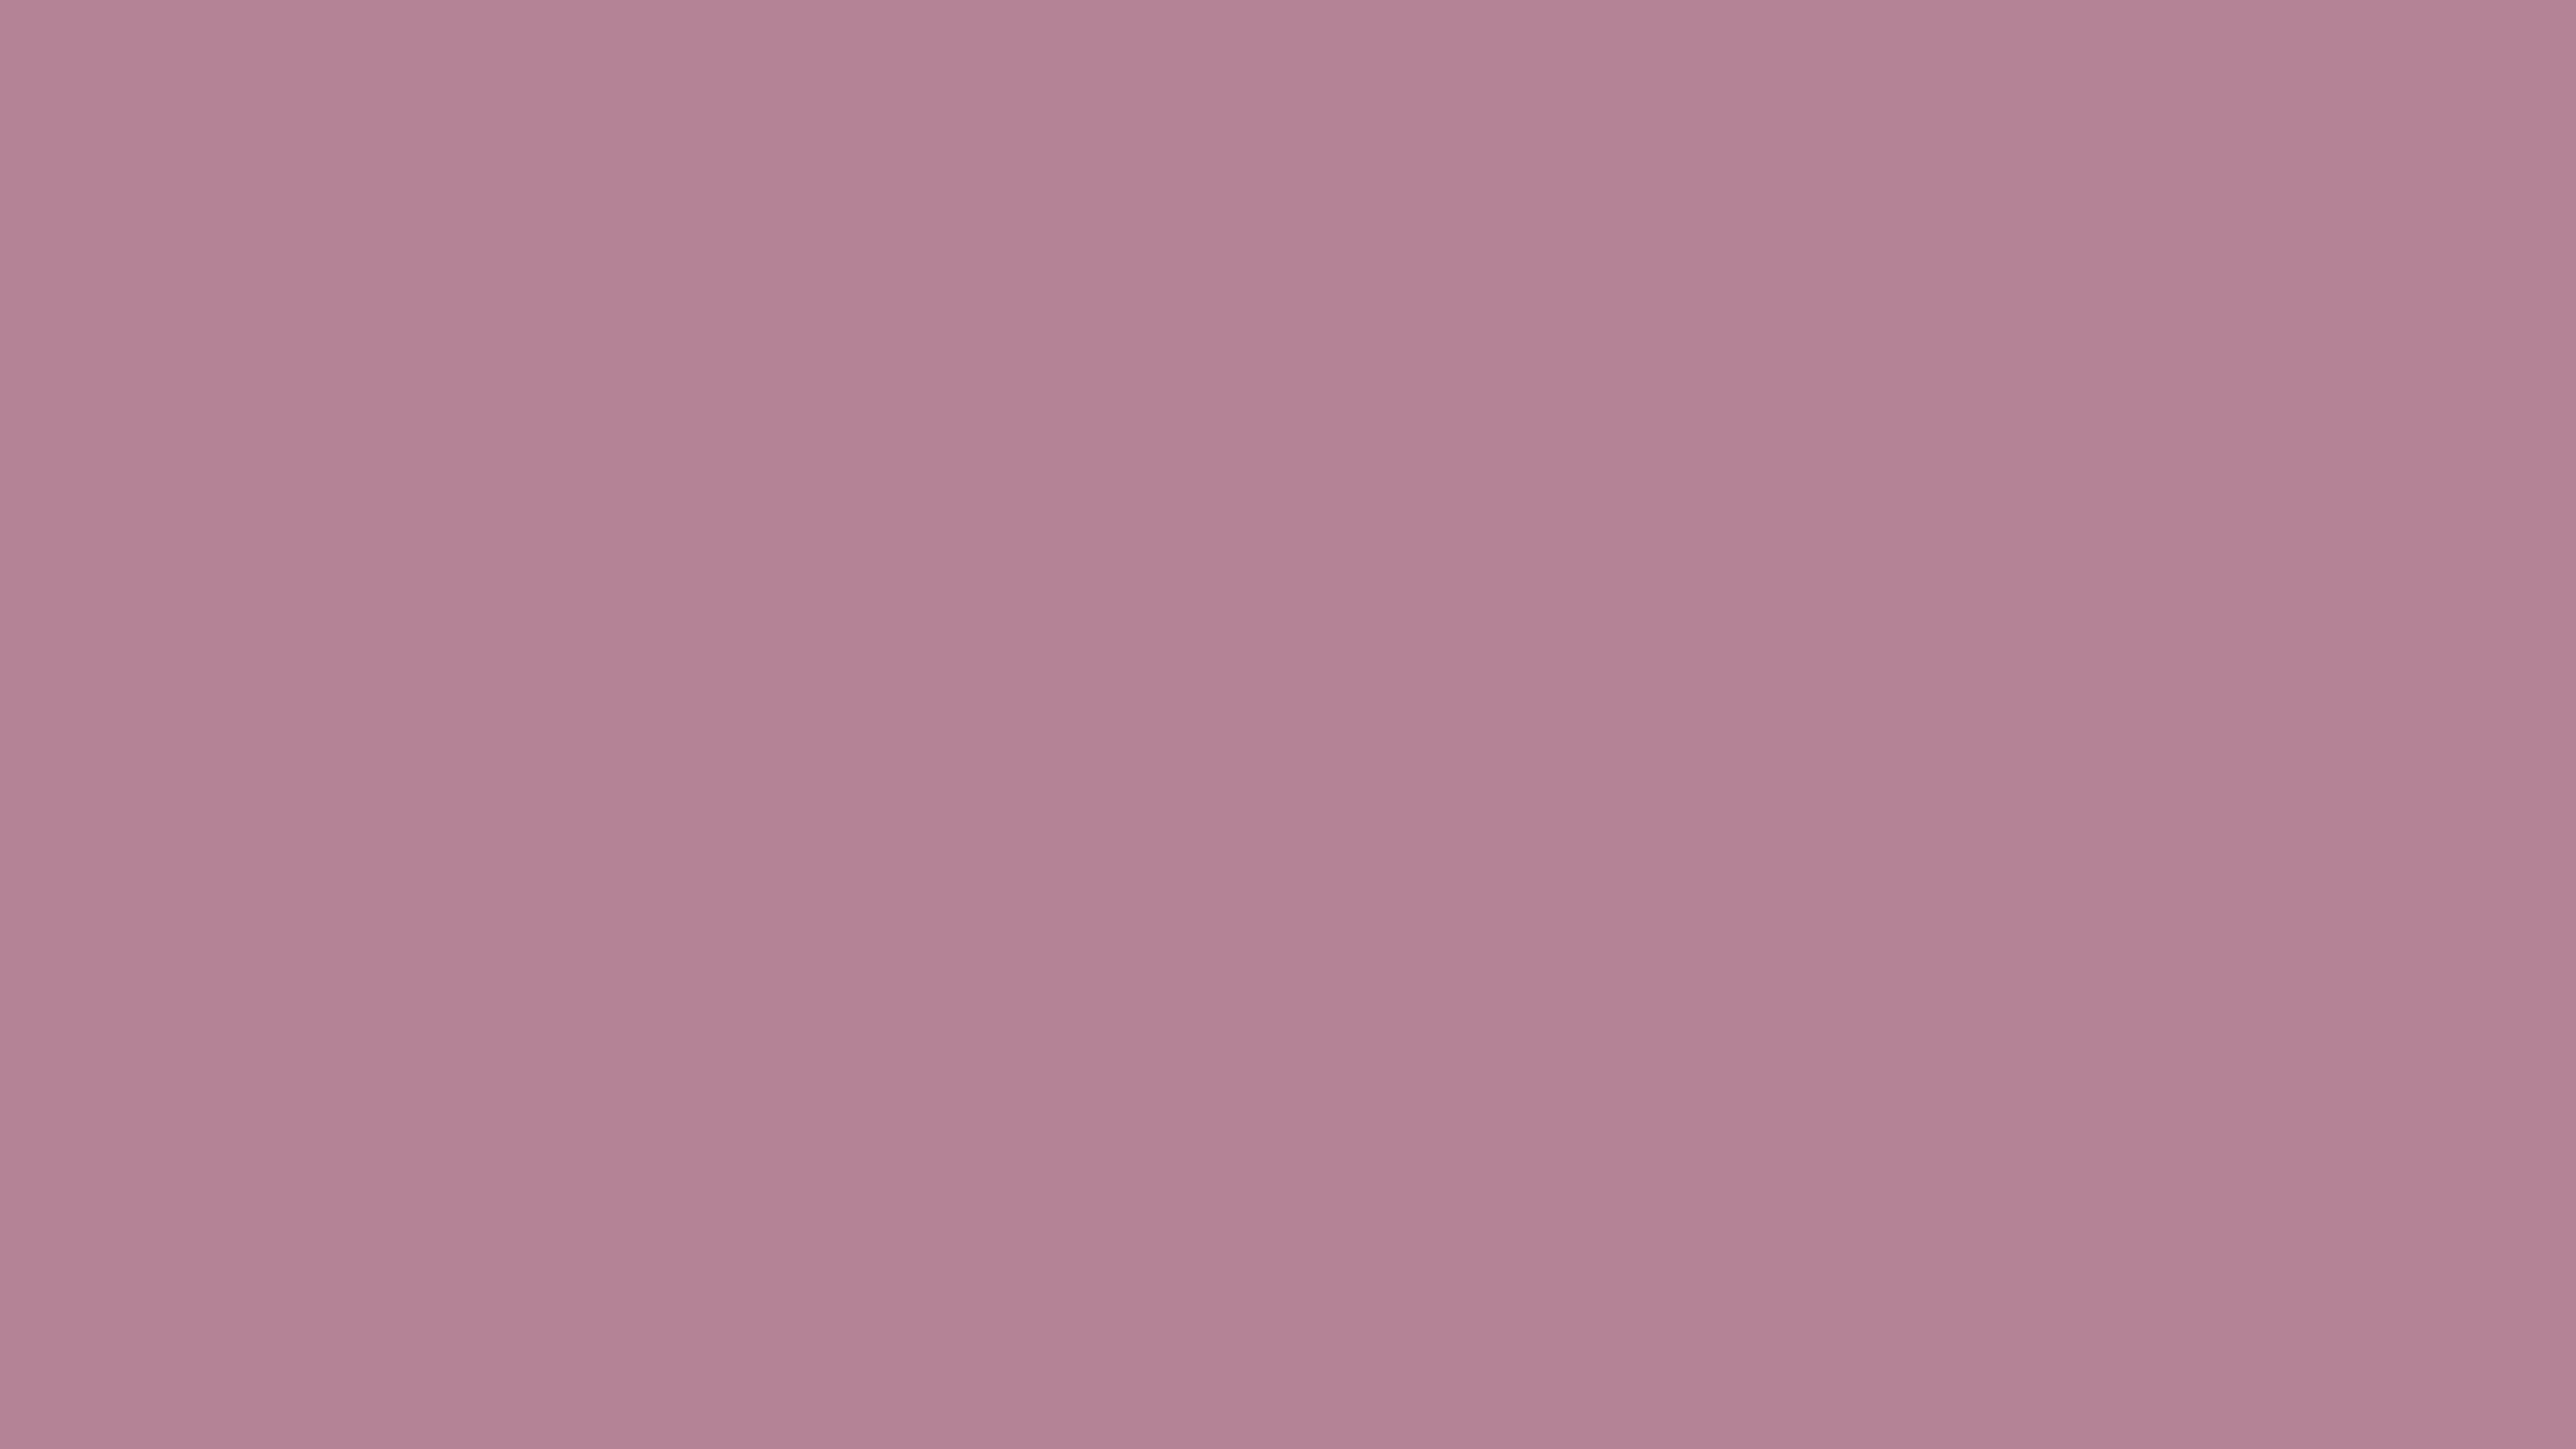 7680x4320 English Lavender Solid Color Background